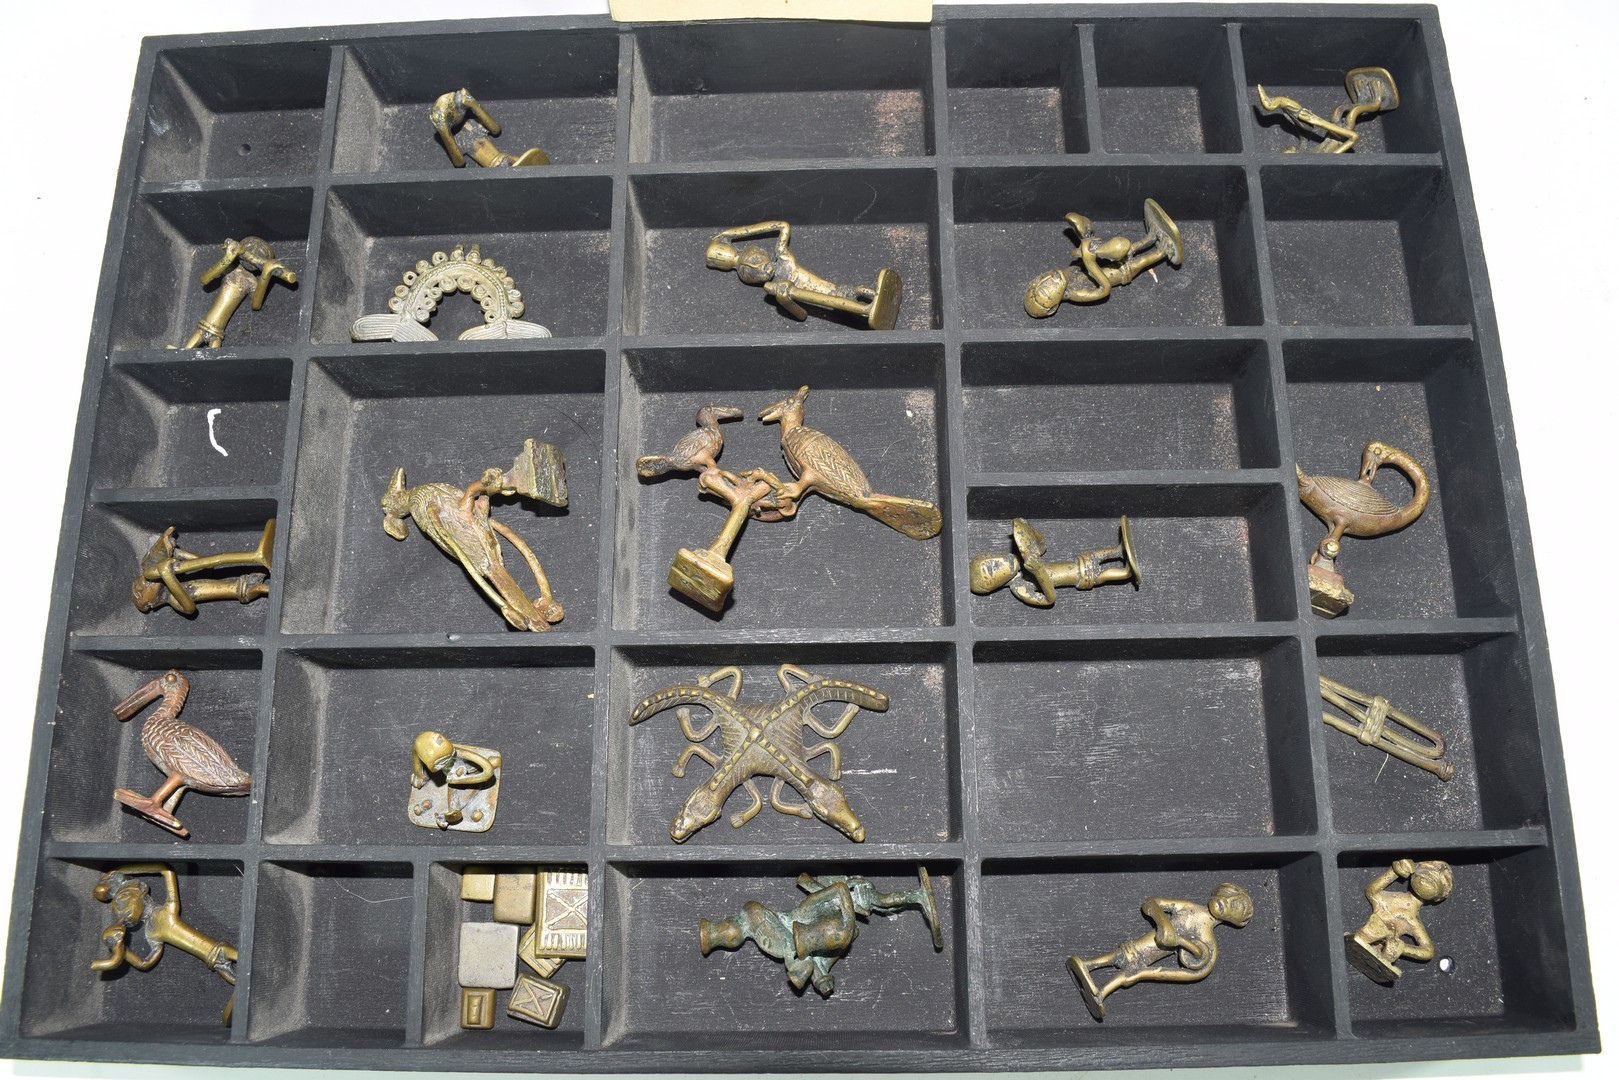 Collection of Ghanaian Ashanti figurative gold weights - Image 3 of 3